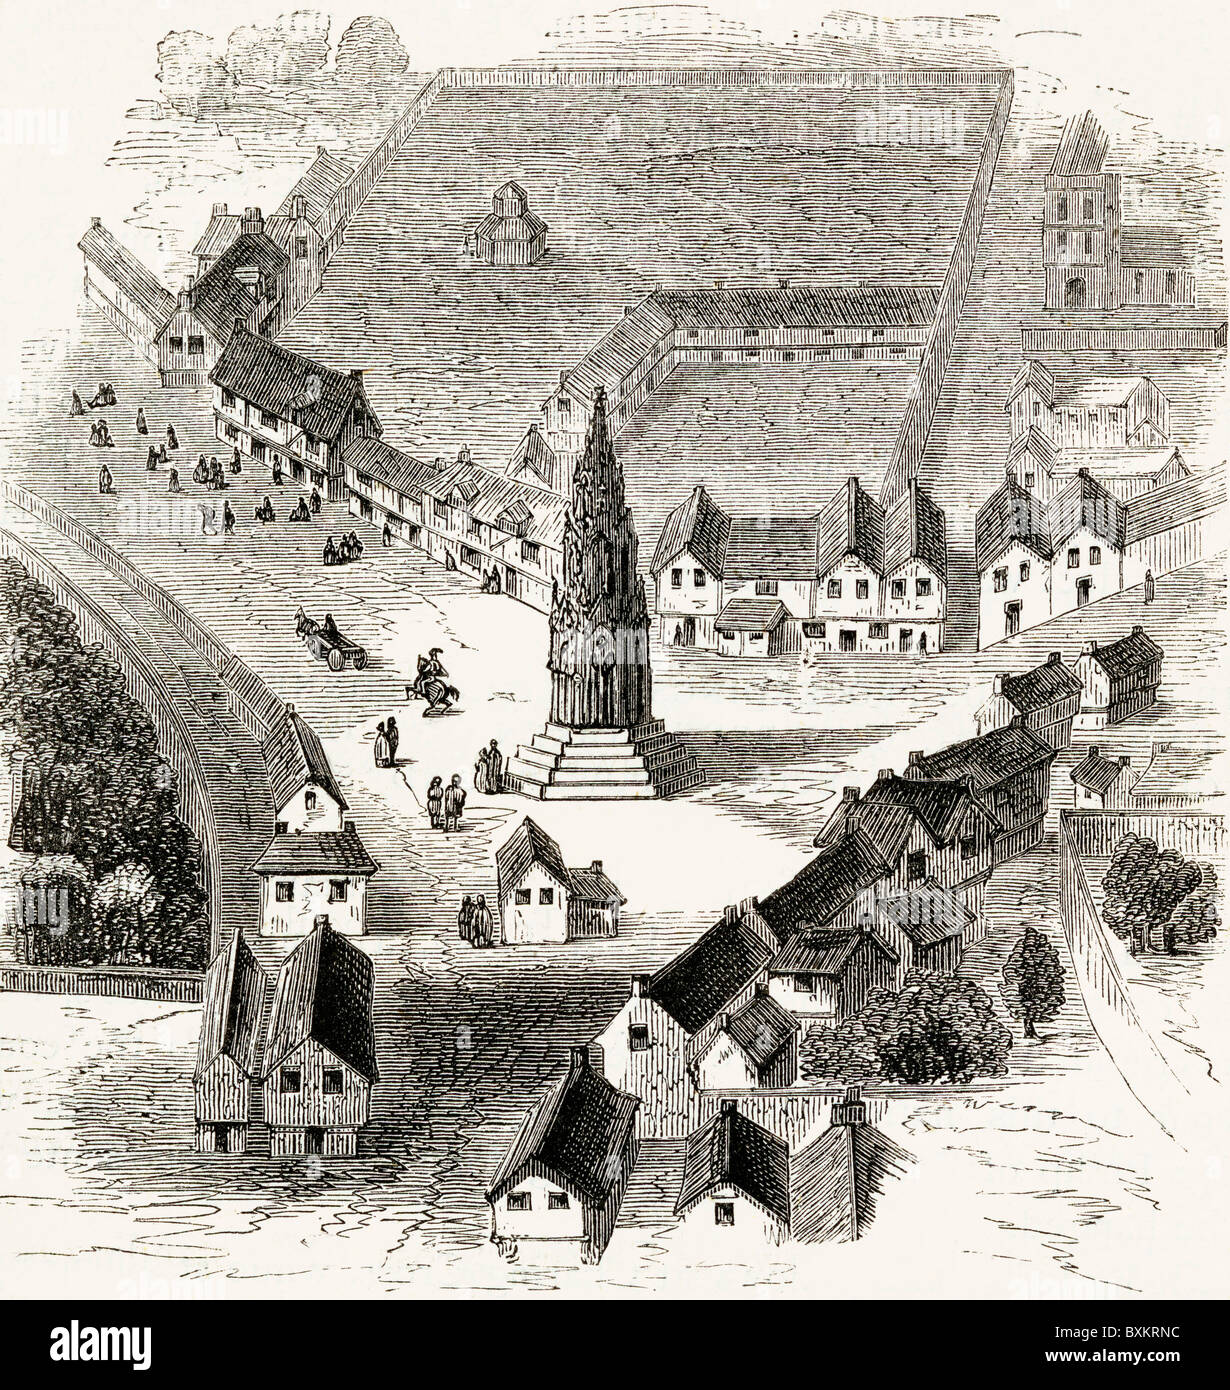 Charing Cross, London, England in the sixteenth century. - Stock Image